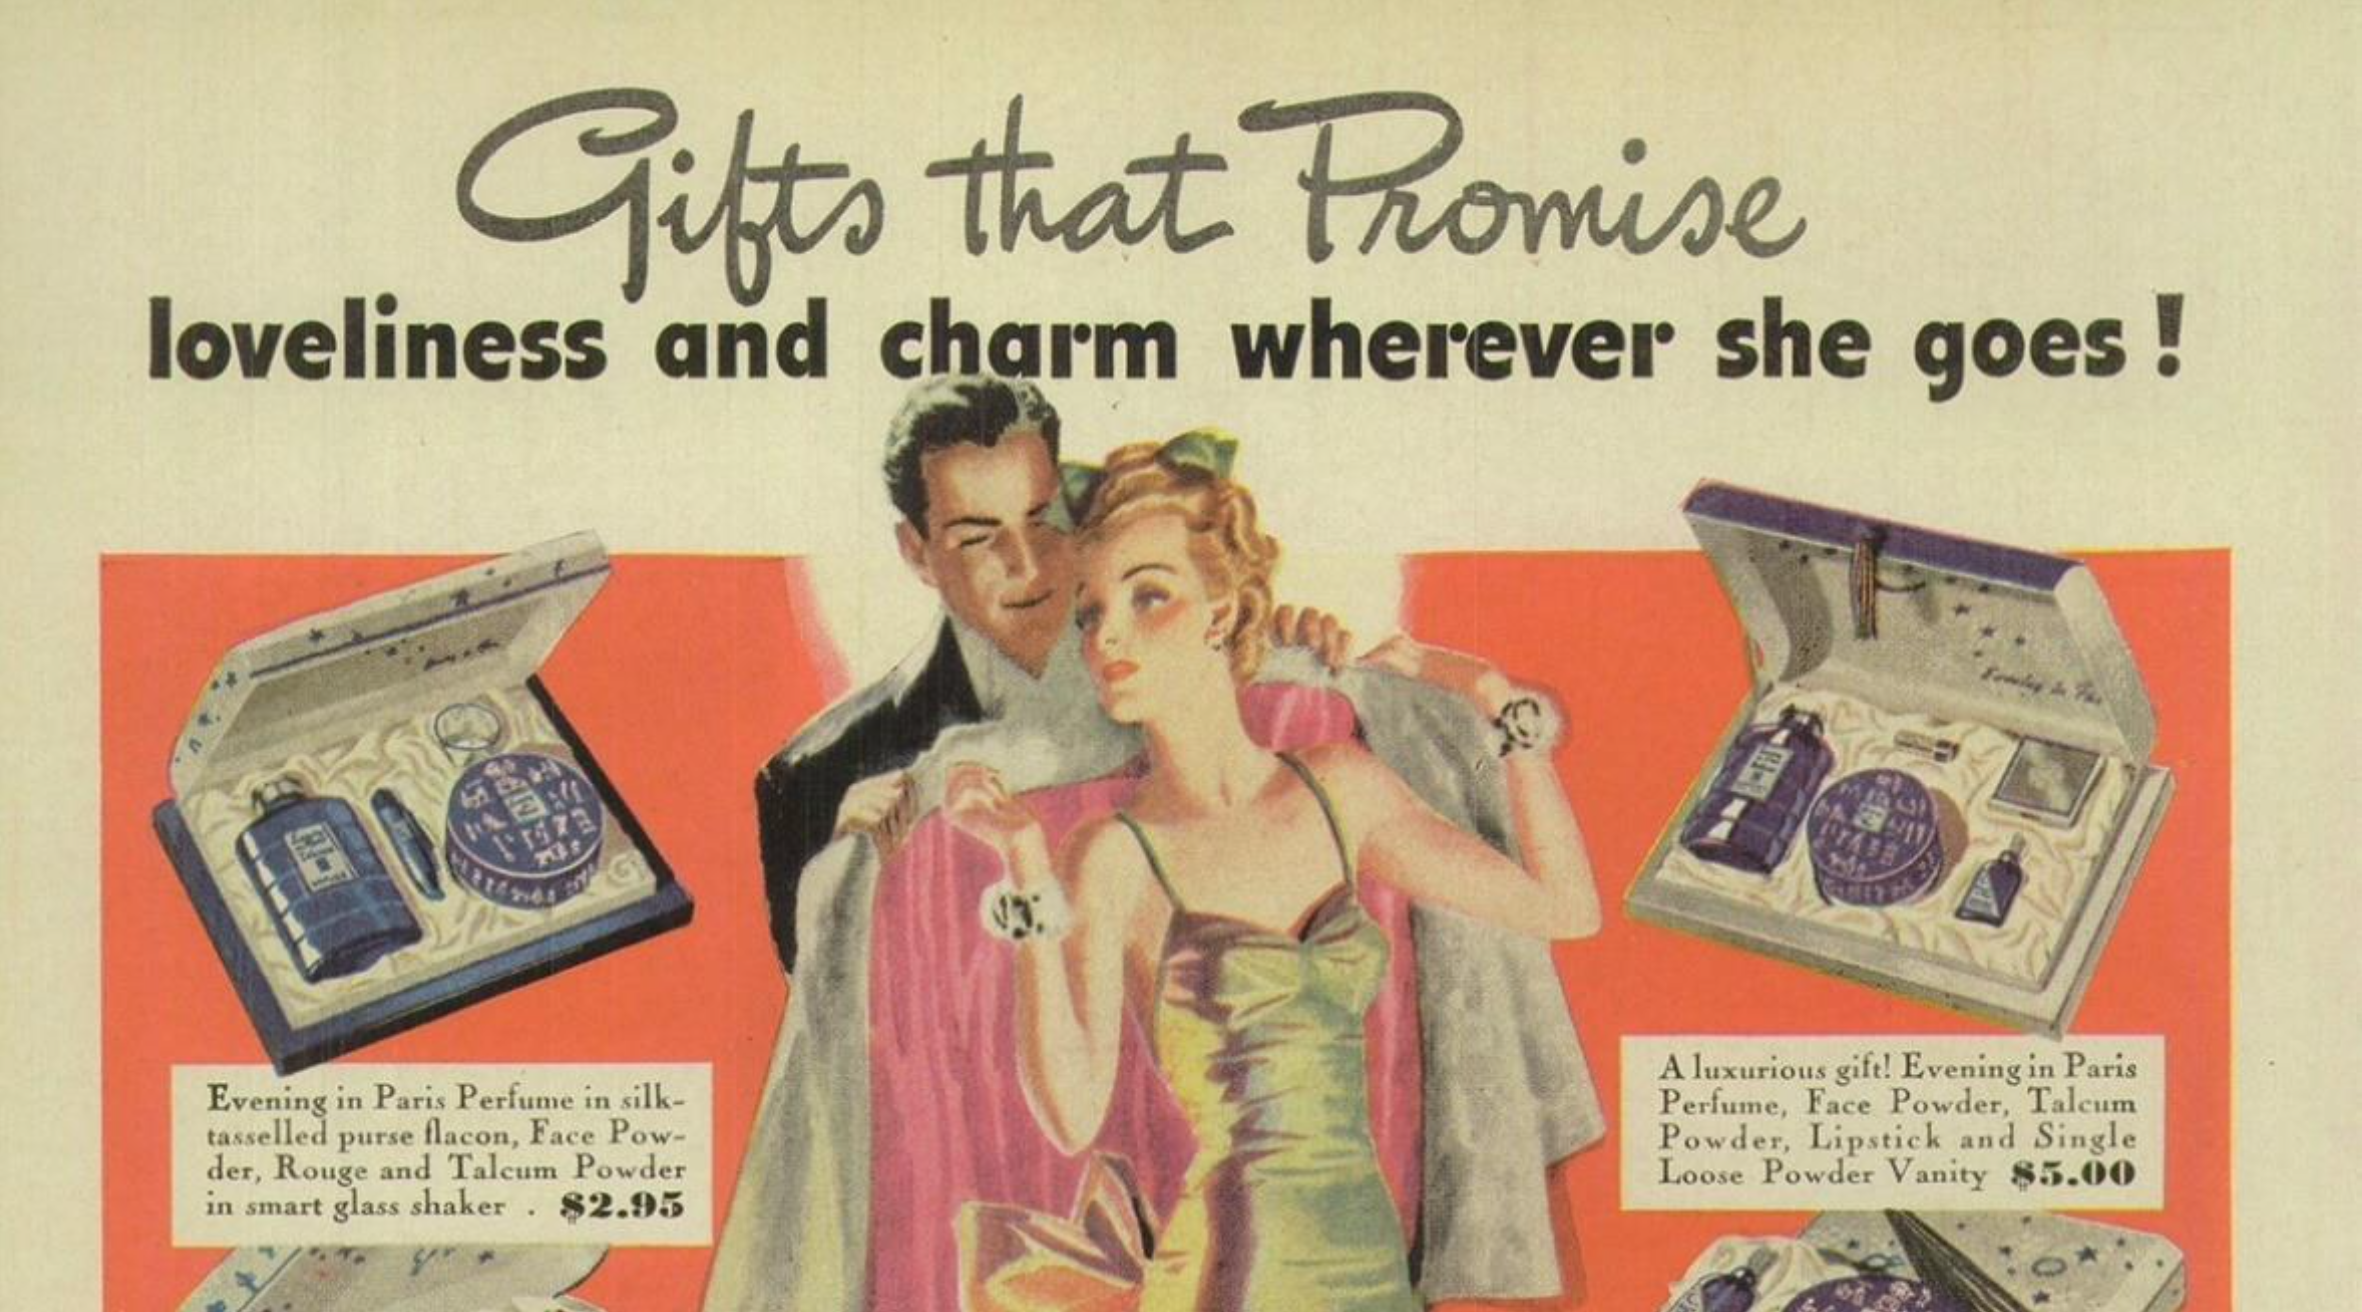 """Defining the Visual Aspects Of """"Antidote Advertising"""" And Its Impact On Pressures Of Women In American Advertising"""